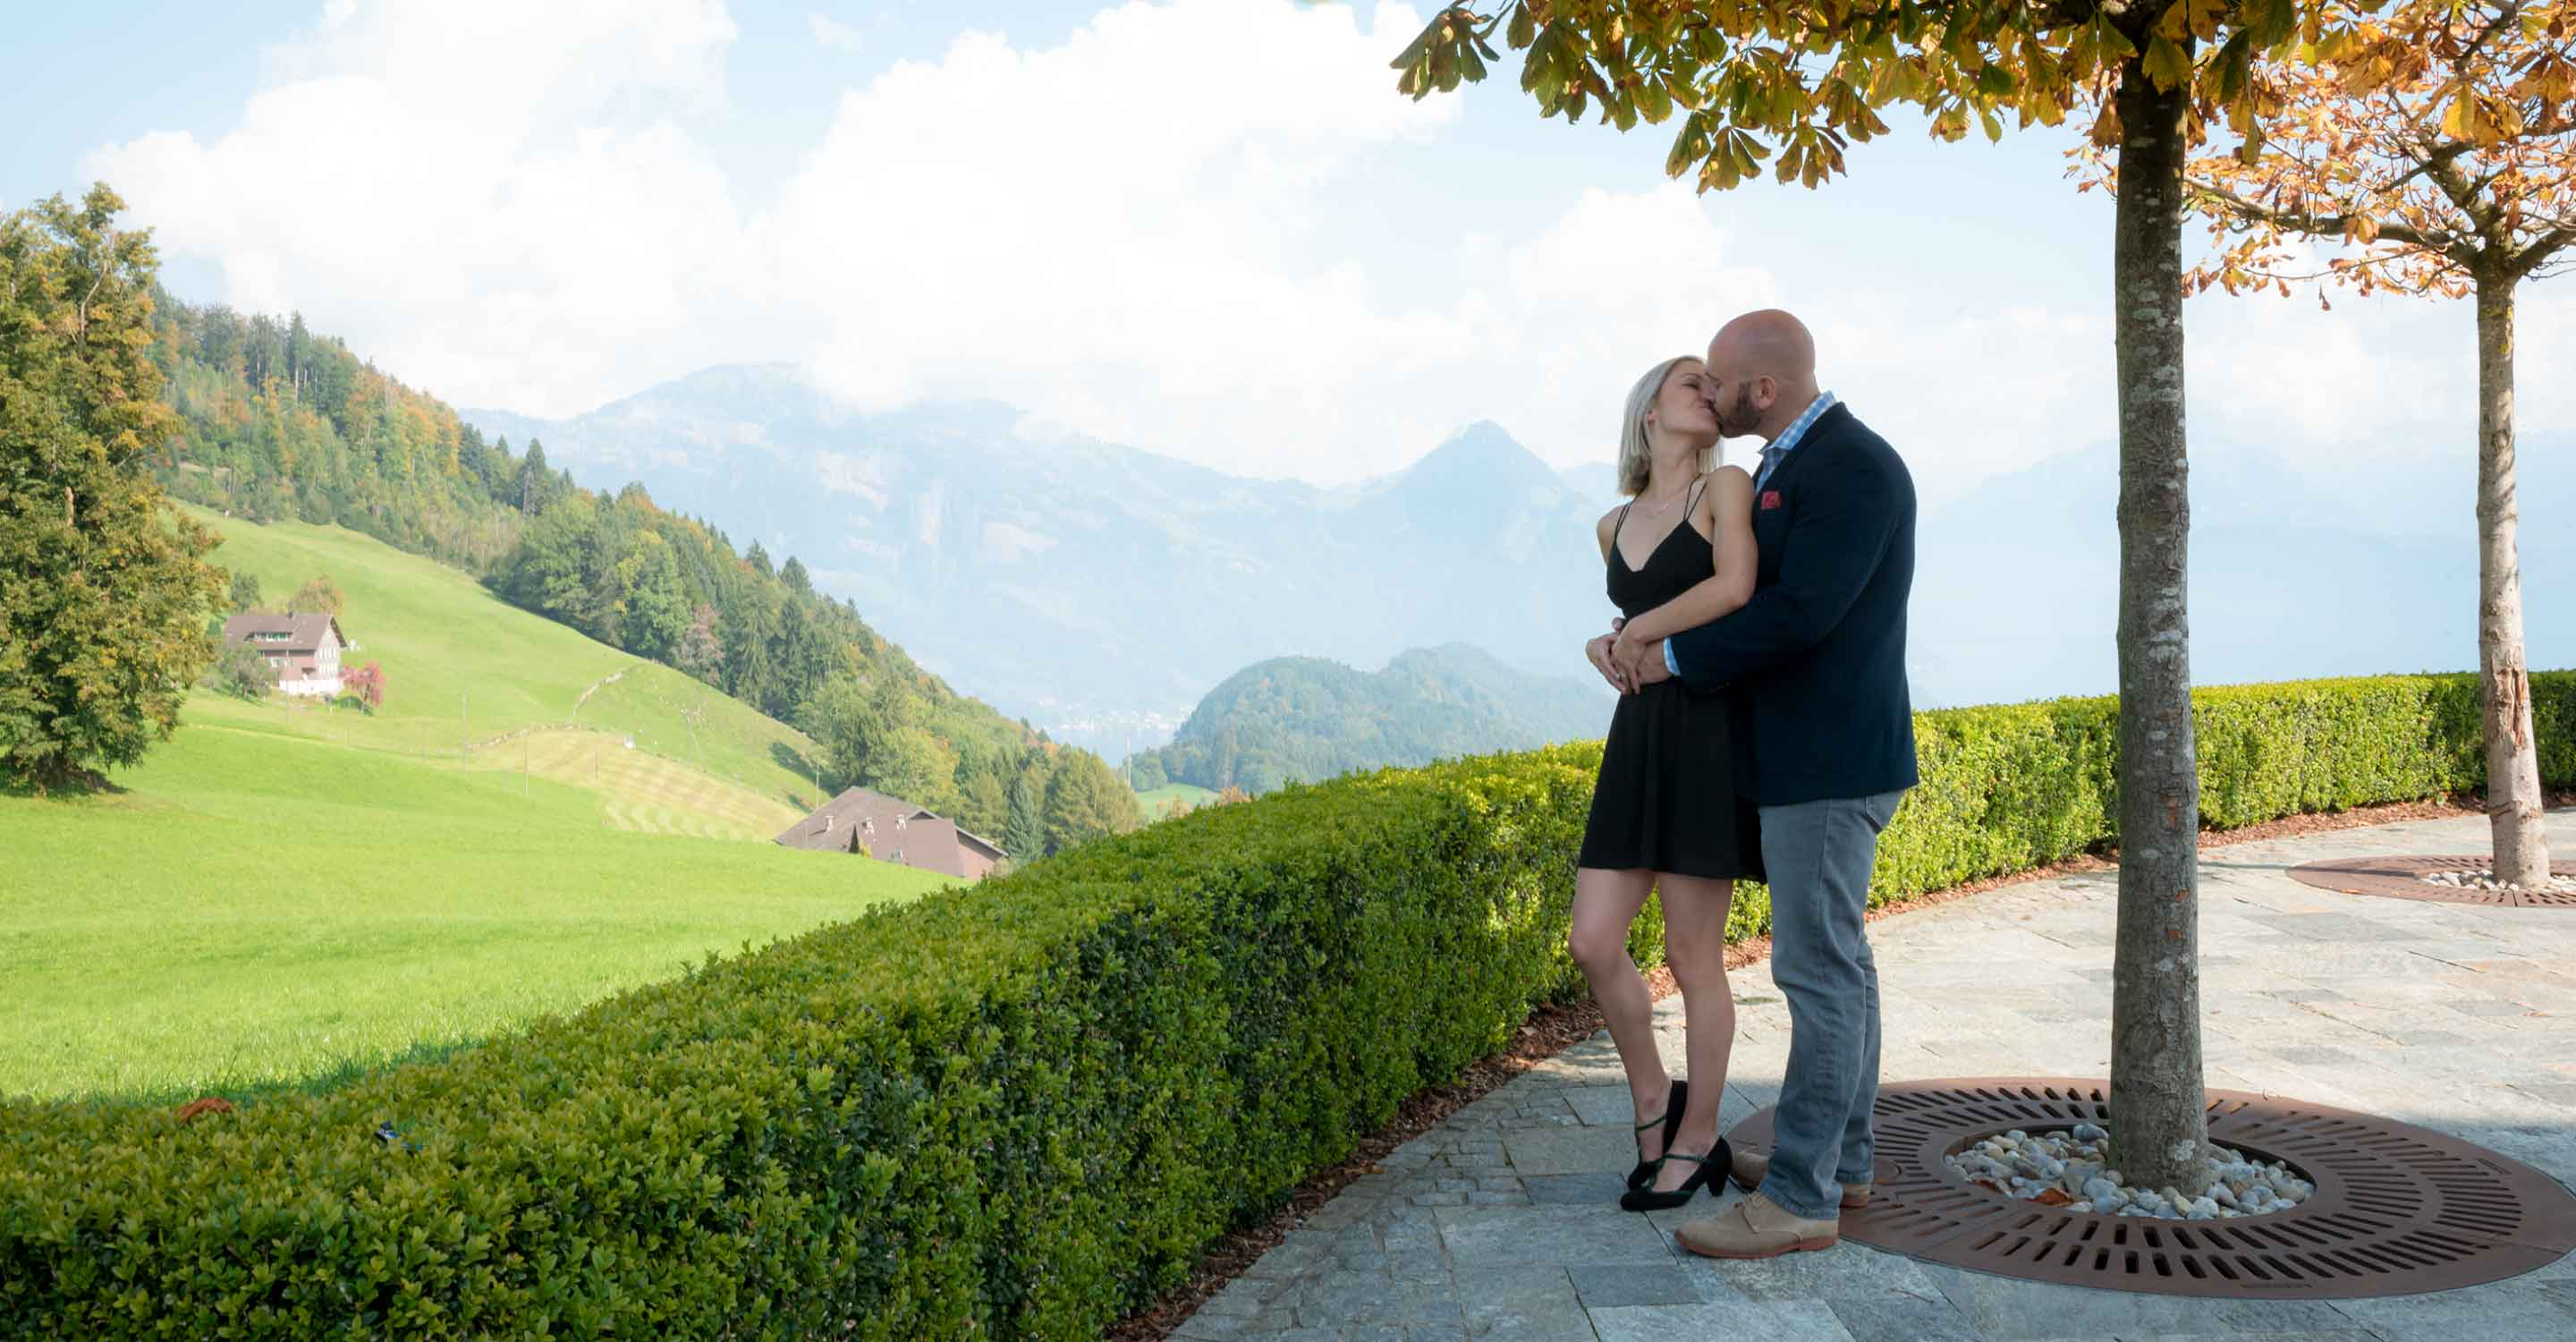 Surprise wedding proposal near Lucerne, Switzerland